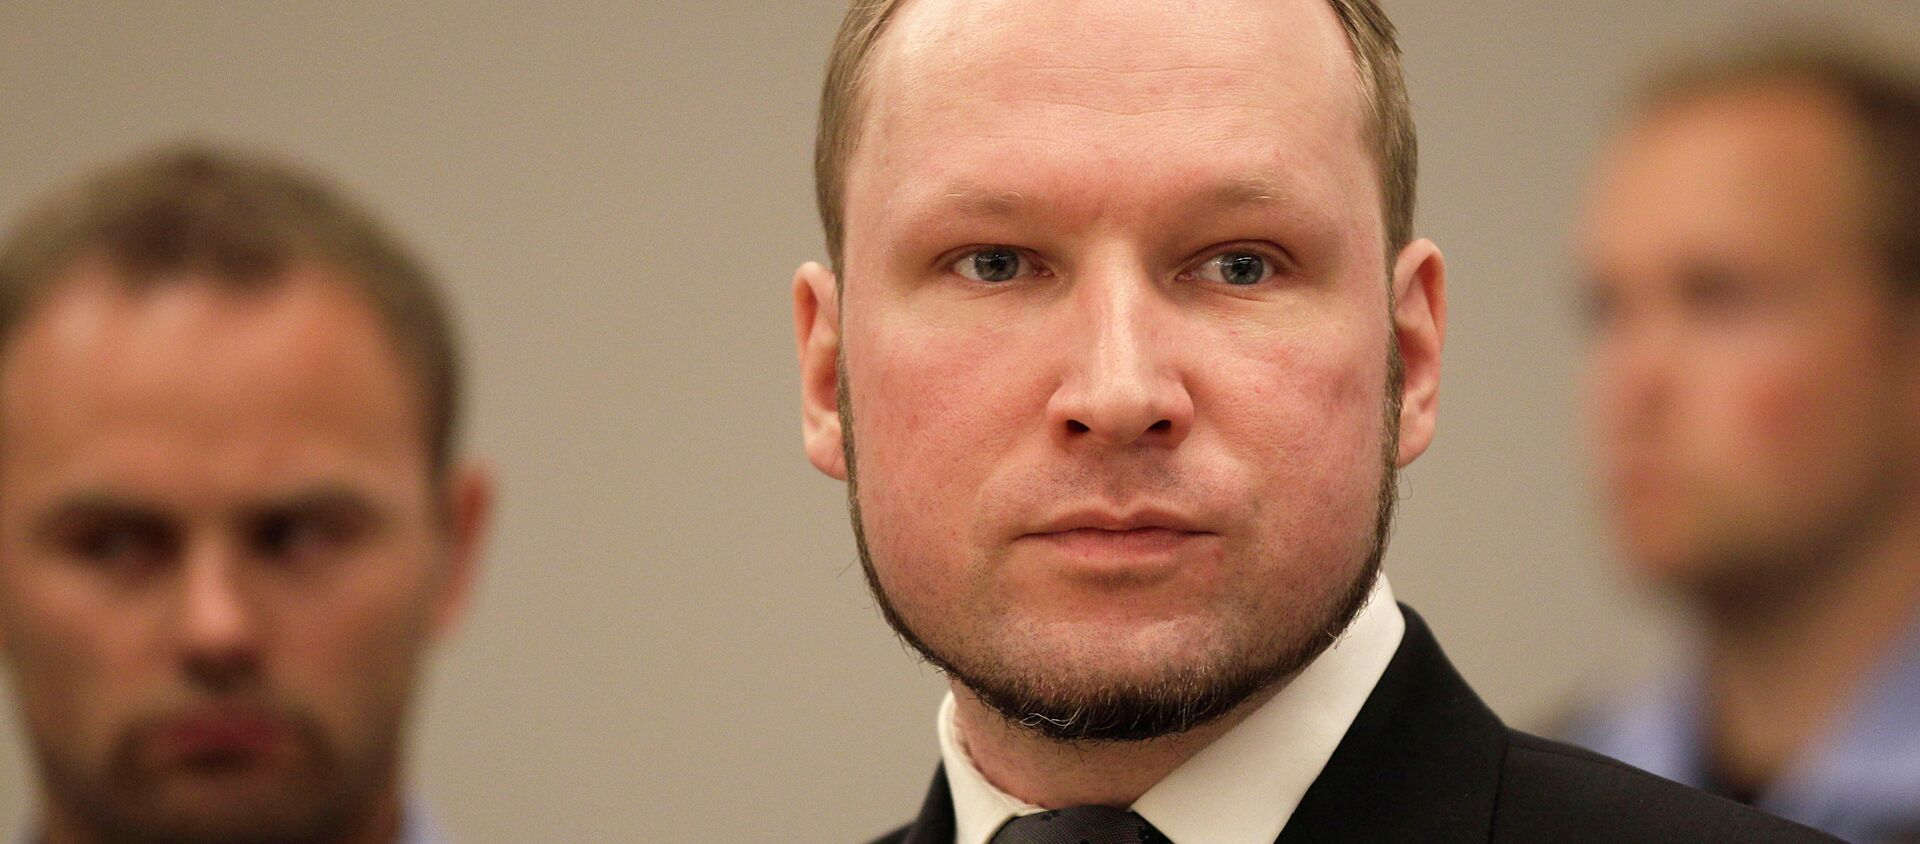 Anders Behring Breivik listens to the judge in the courtroom, Friday, Aug. 24, 2012, in Oslo, Norway - Sputnik International, 1920, 22.07.2021